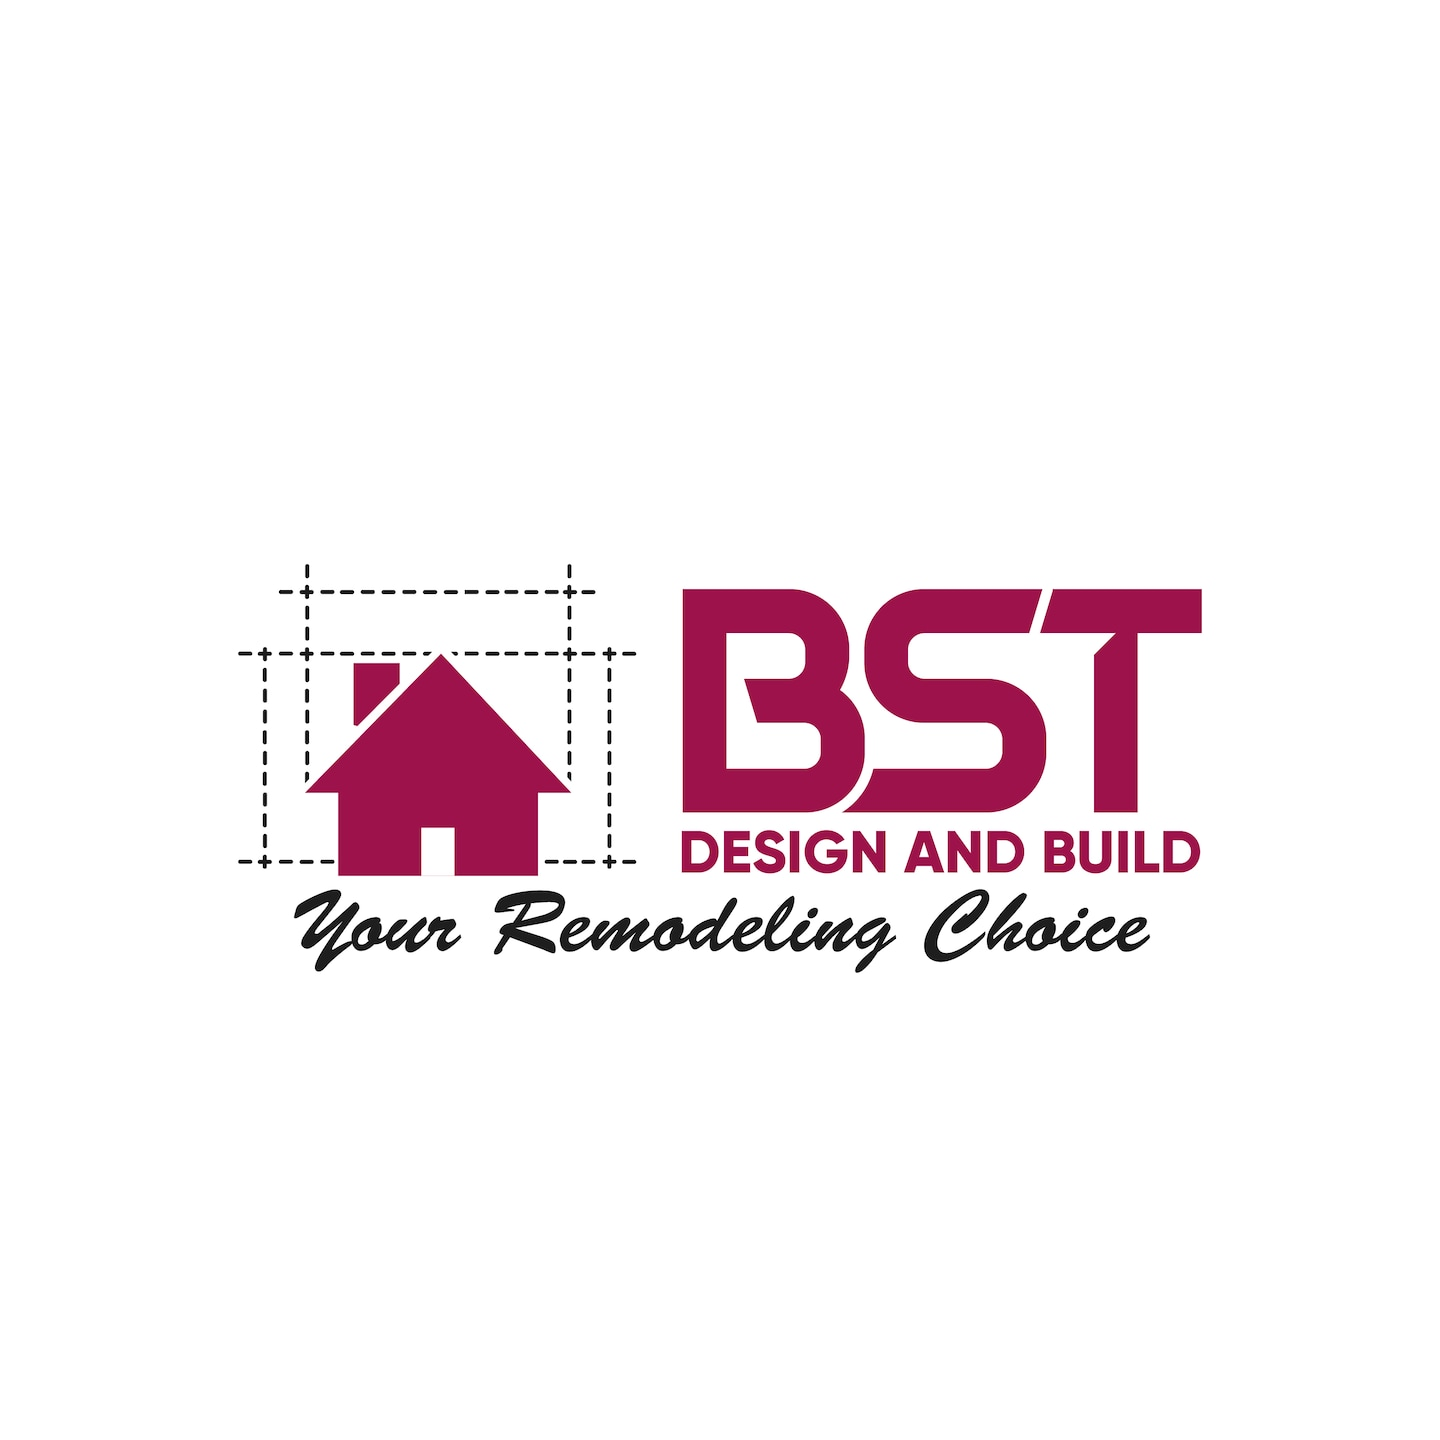 BST Design and Build